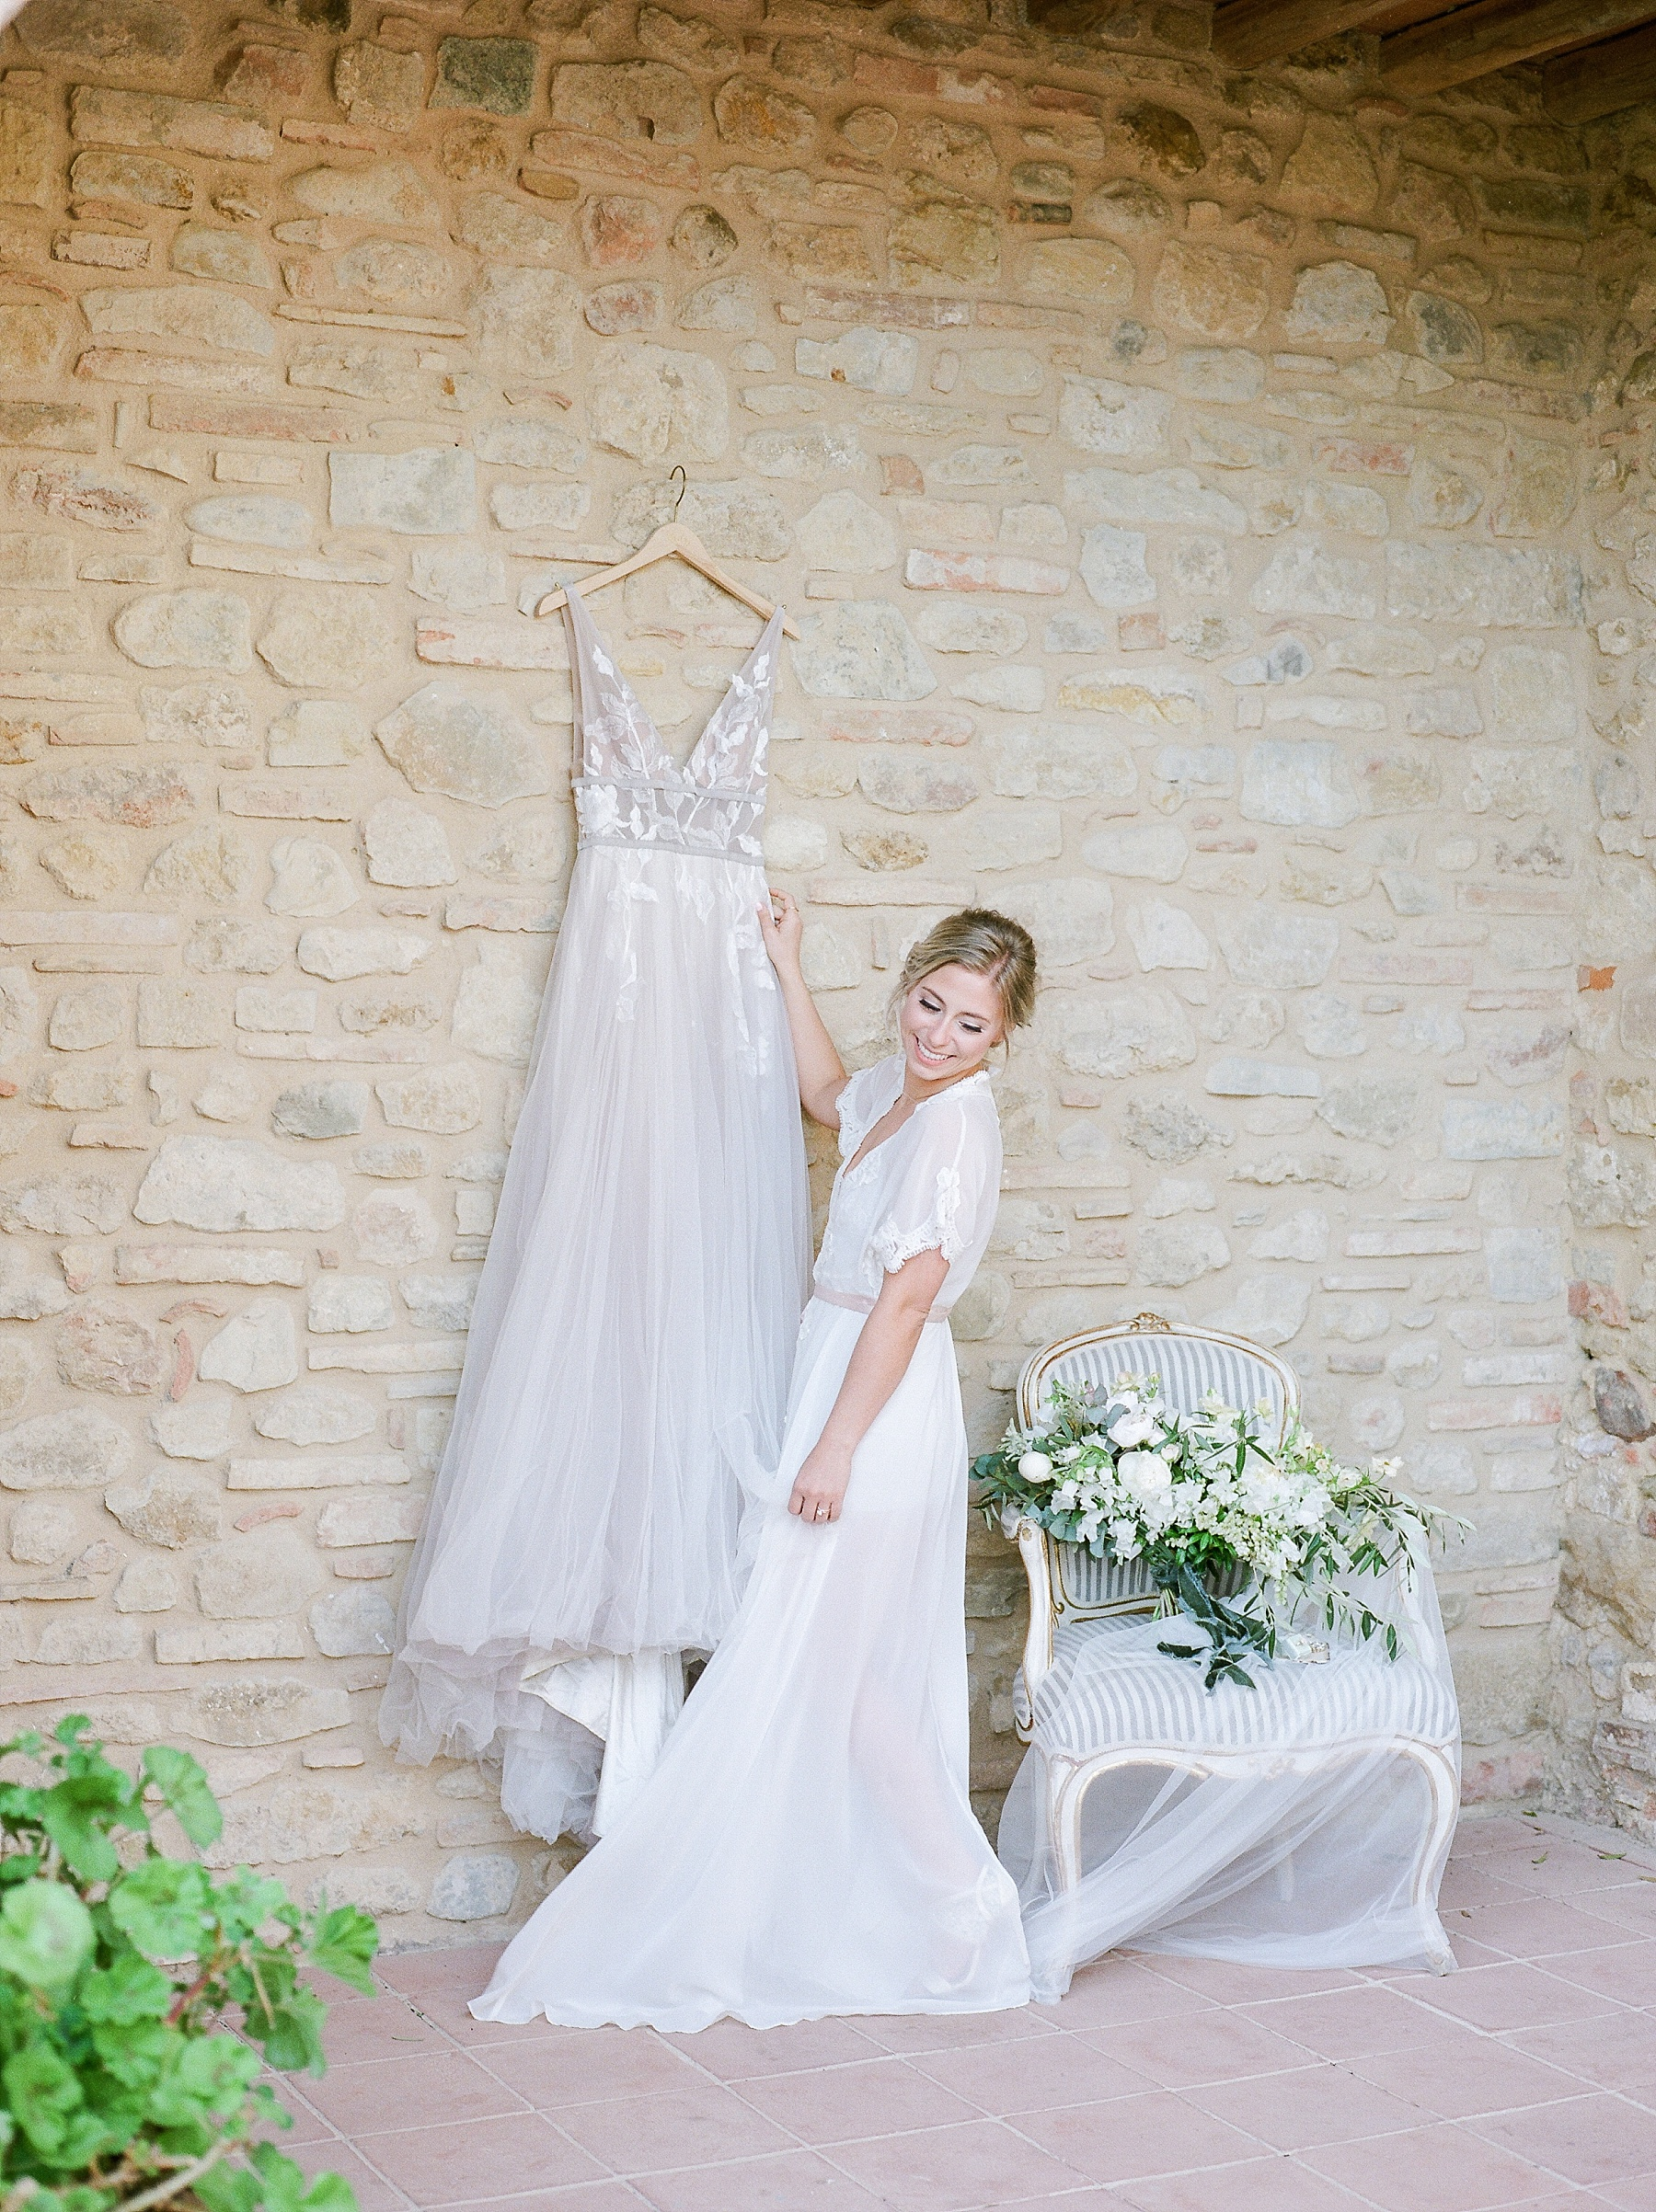 All White Destination Wedding in the Hills of Tuscany Italy at Estate Borgo Petrognano by Kelsi Kliethermes Photography_0007.jpg